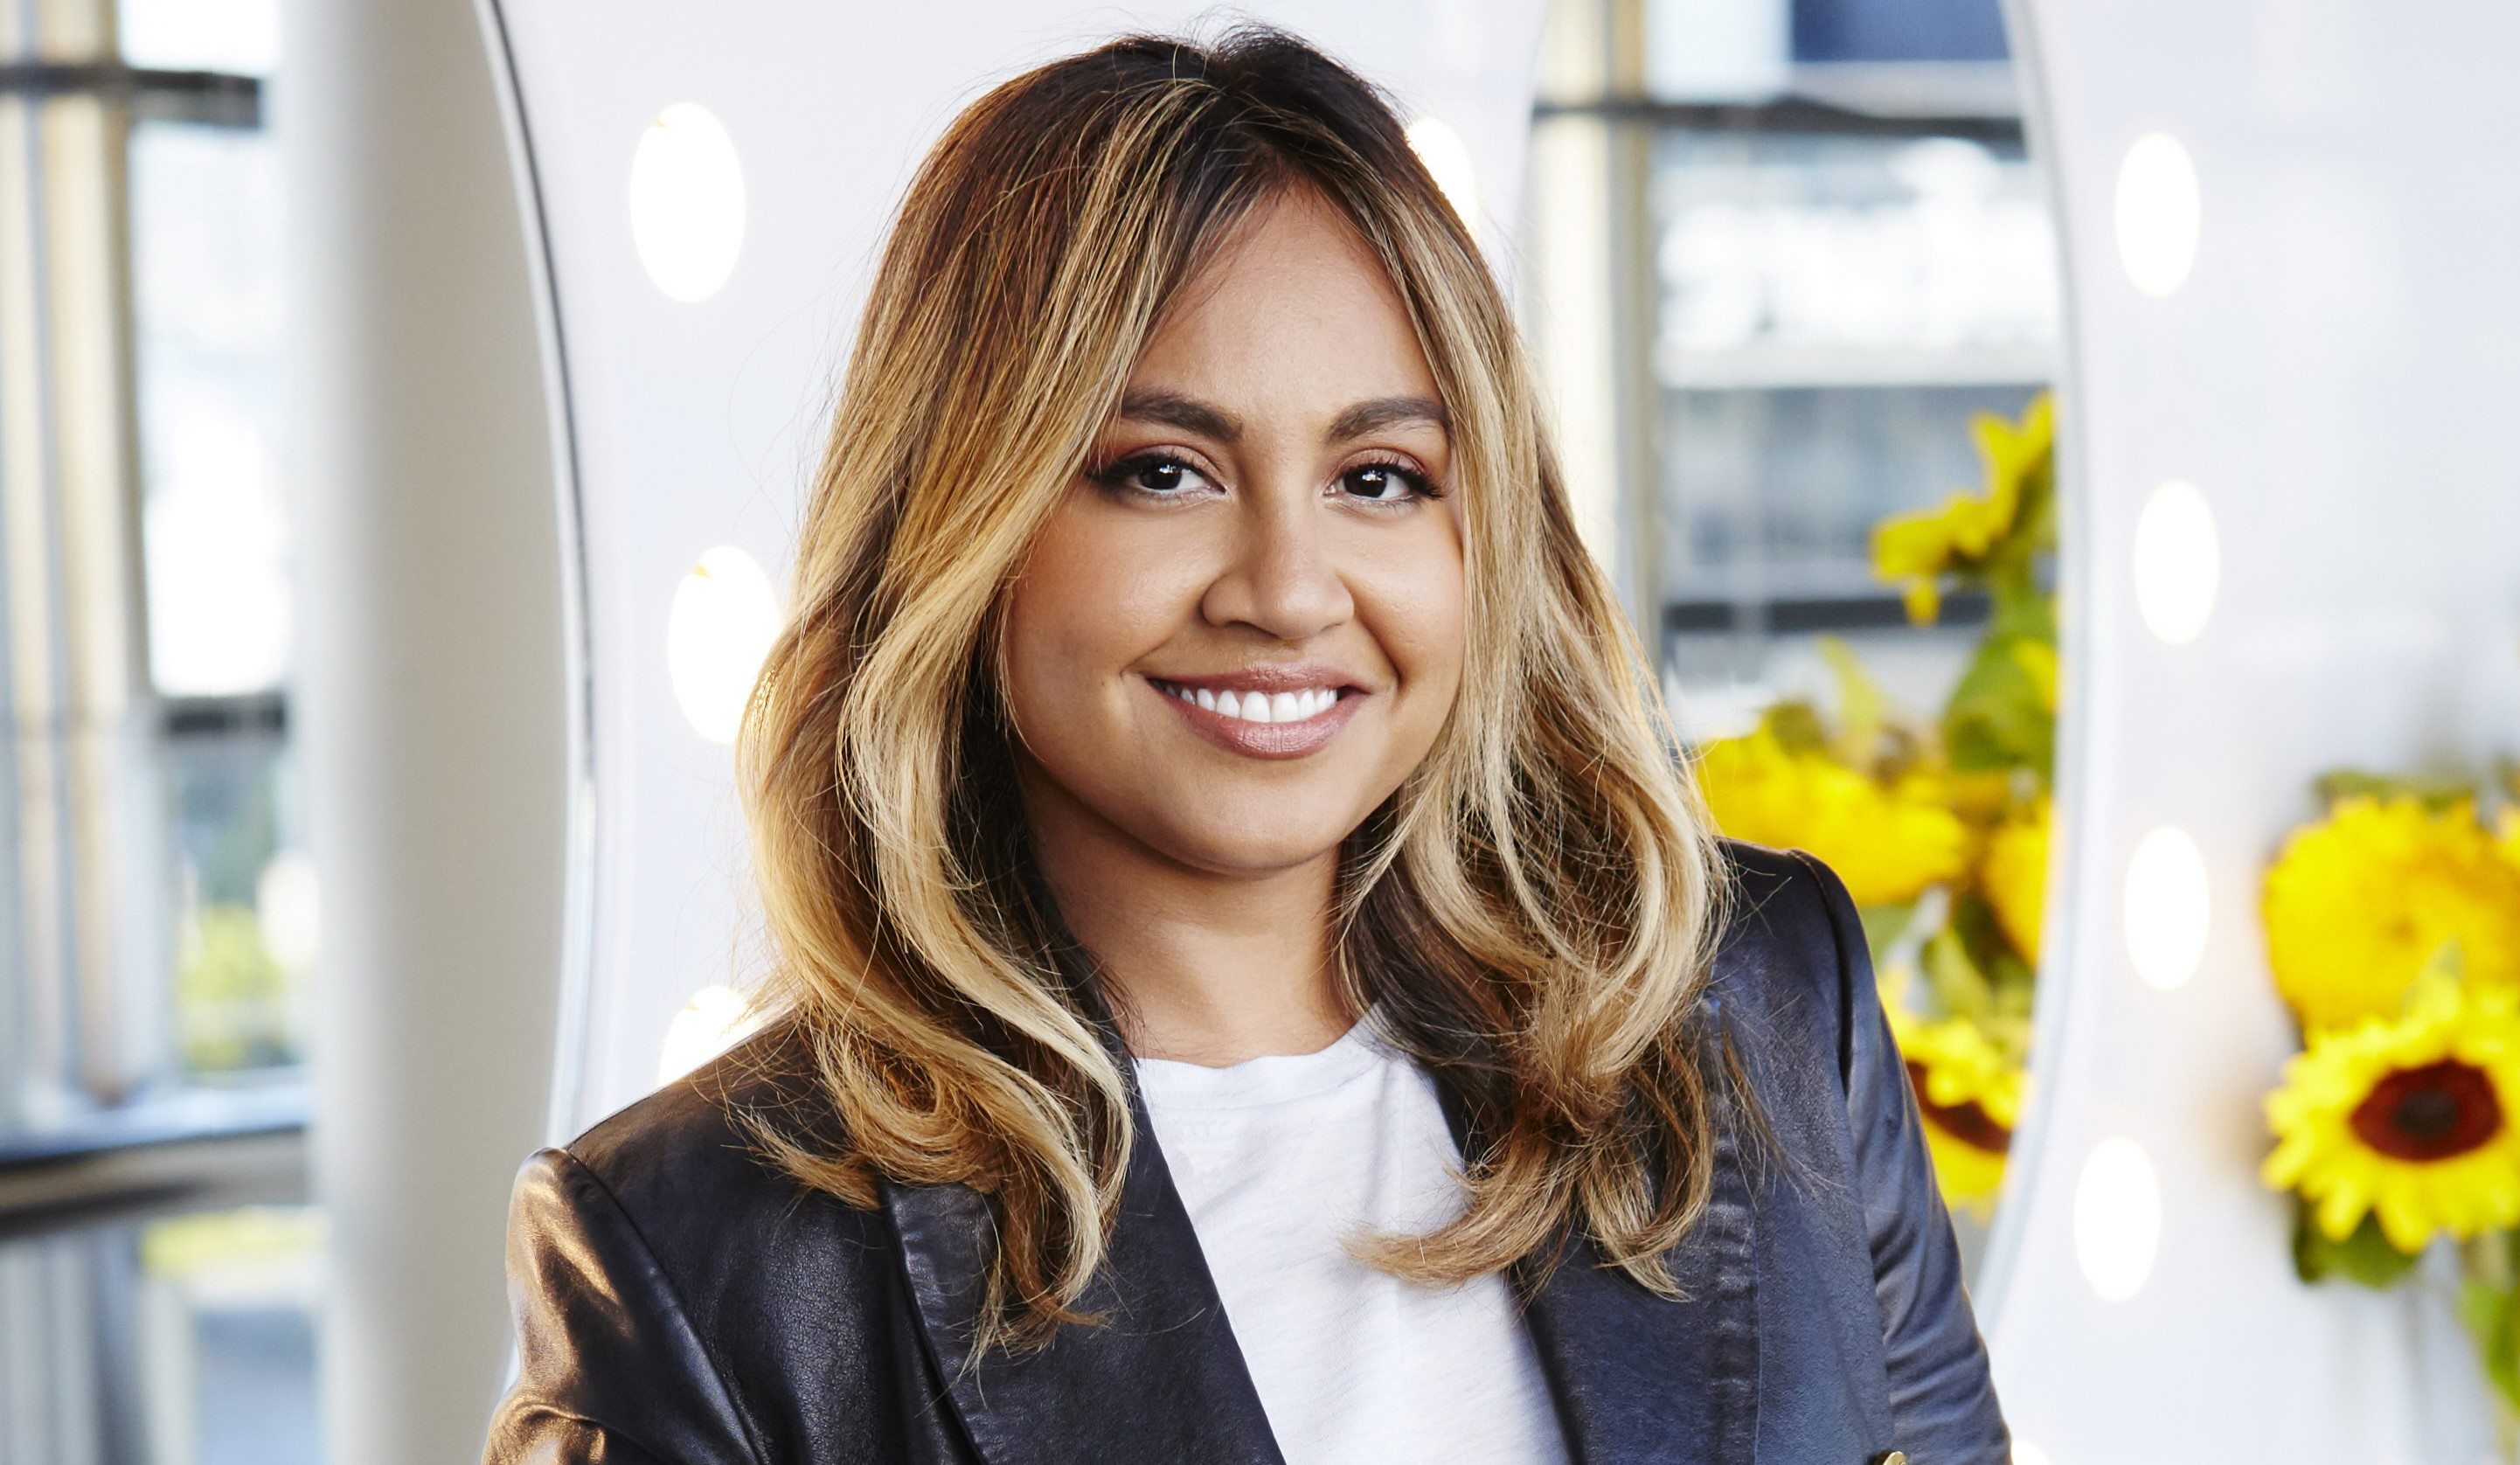 bra Jessica Mauboy naked photo 2017